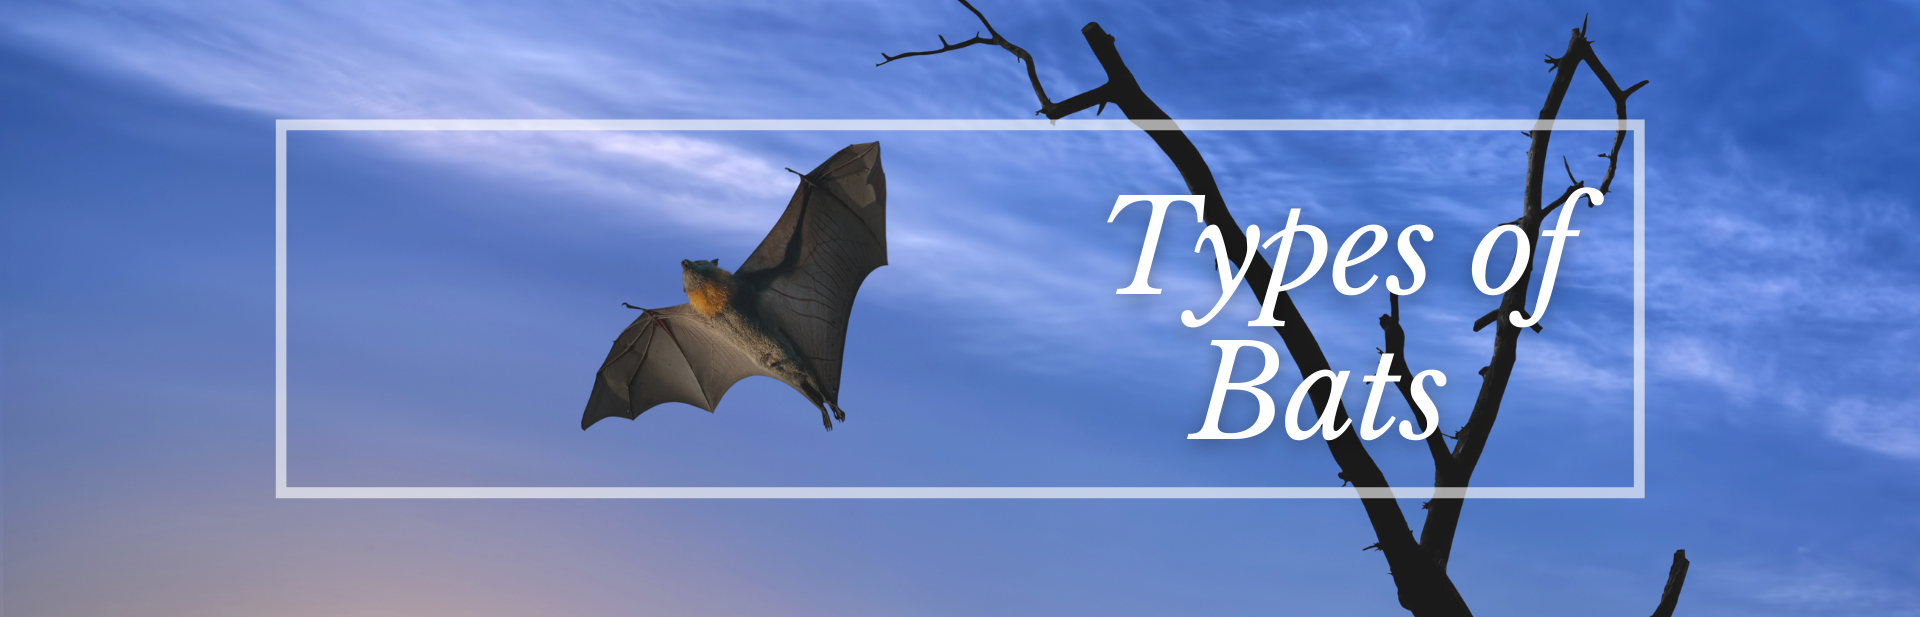 28 Types of Bats: The Cutest Bat Species (Names, Photos, and More)